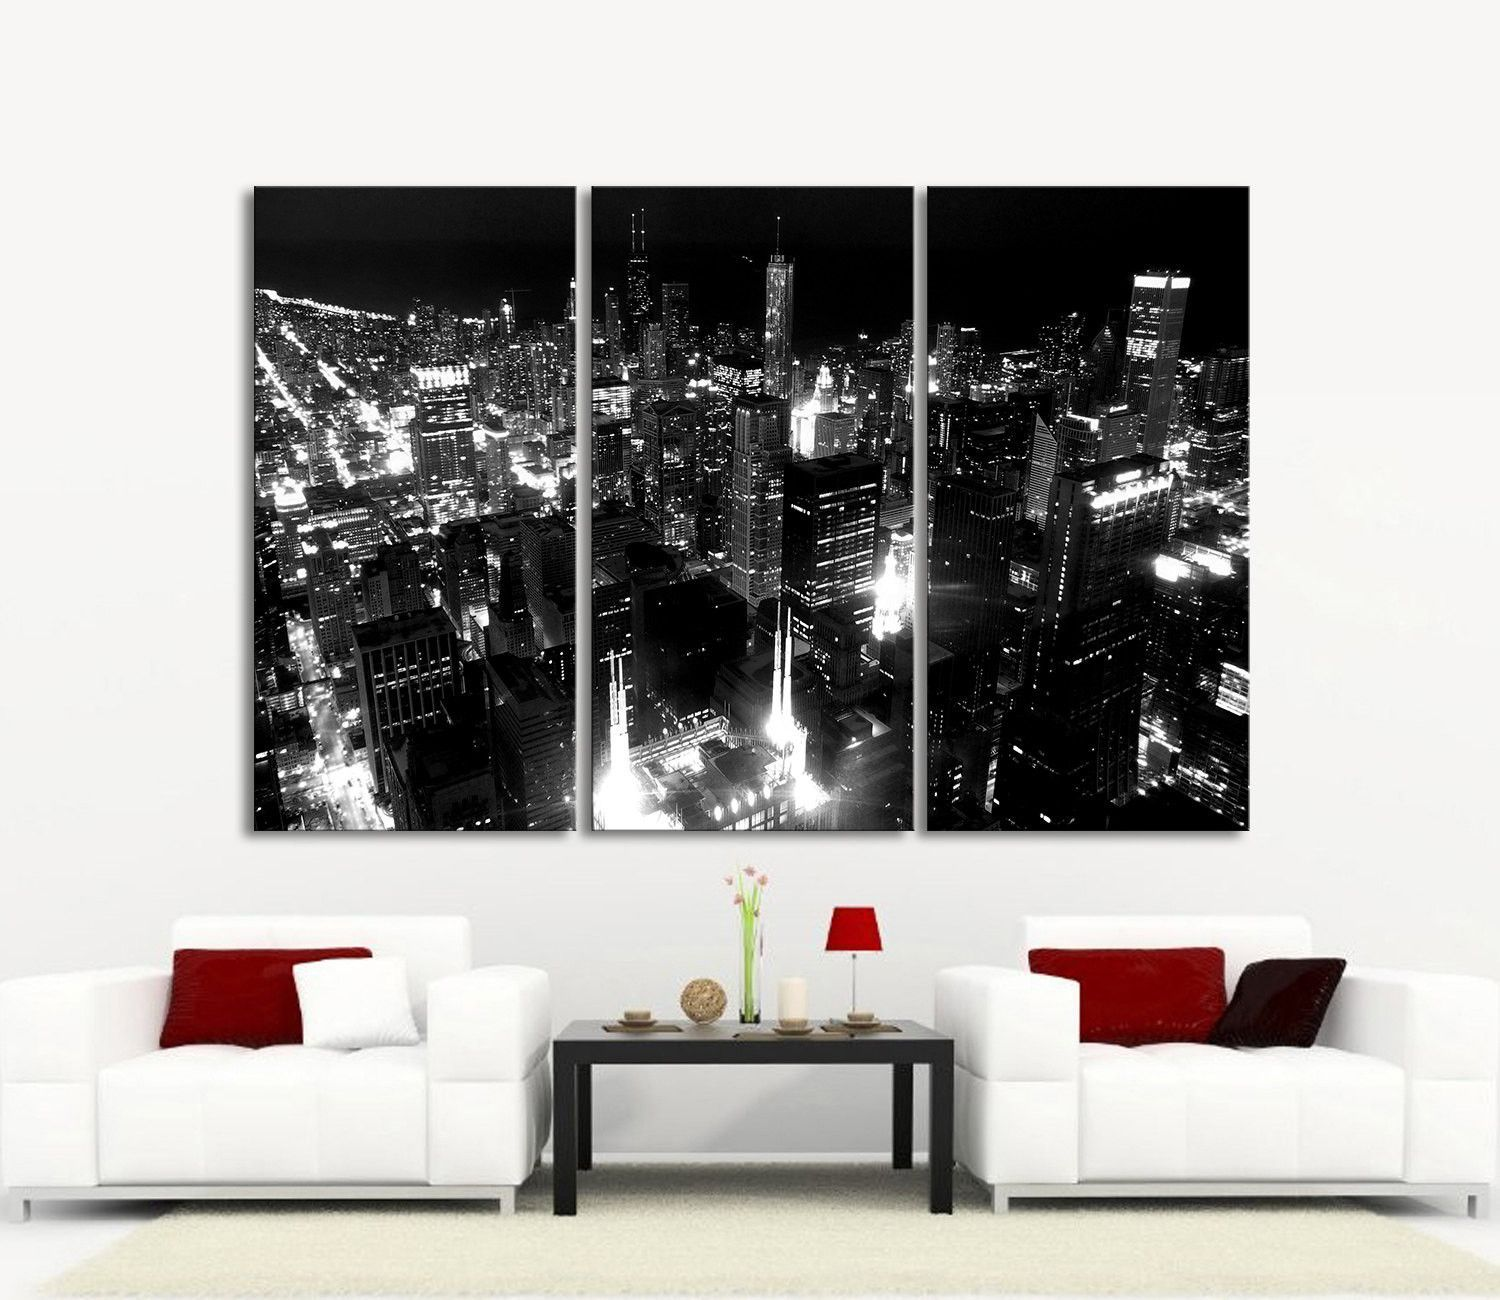 LARGE Wall Art Canvas Print Chicago City Skyline At Night   3 Panel (3 Piece